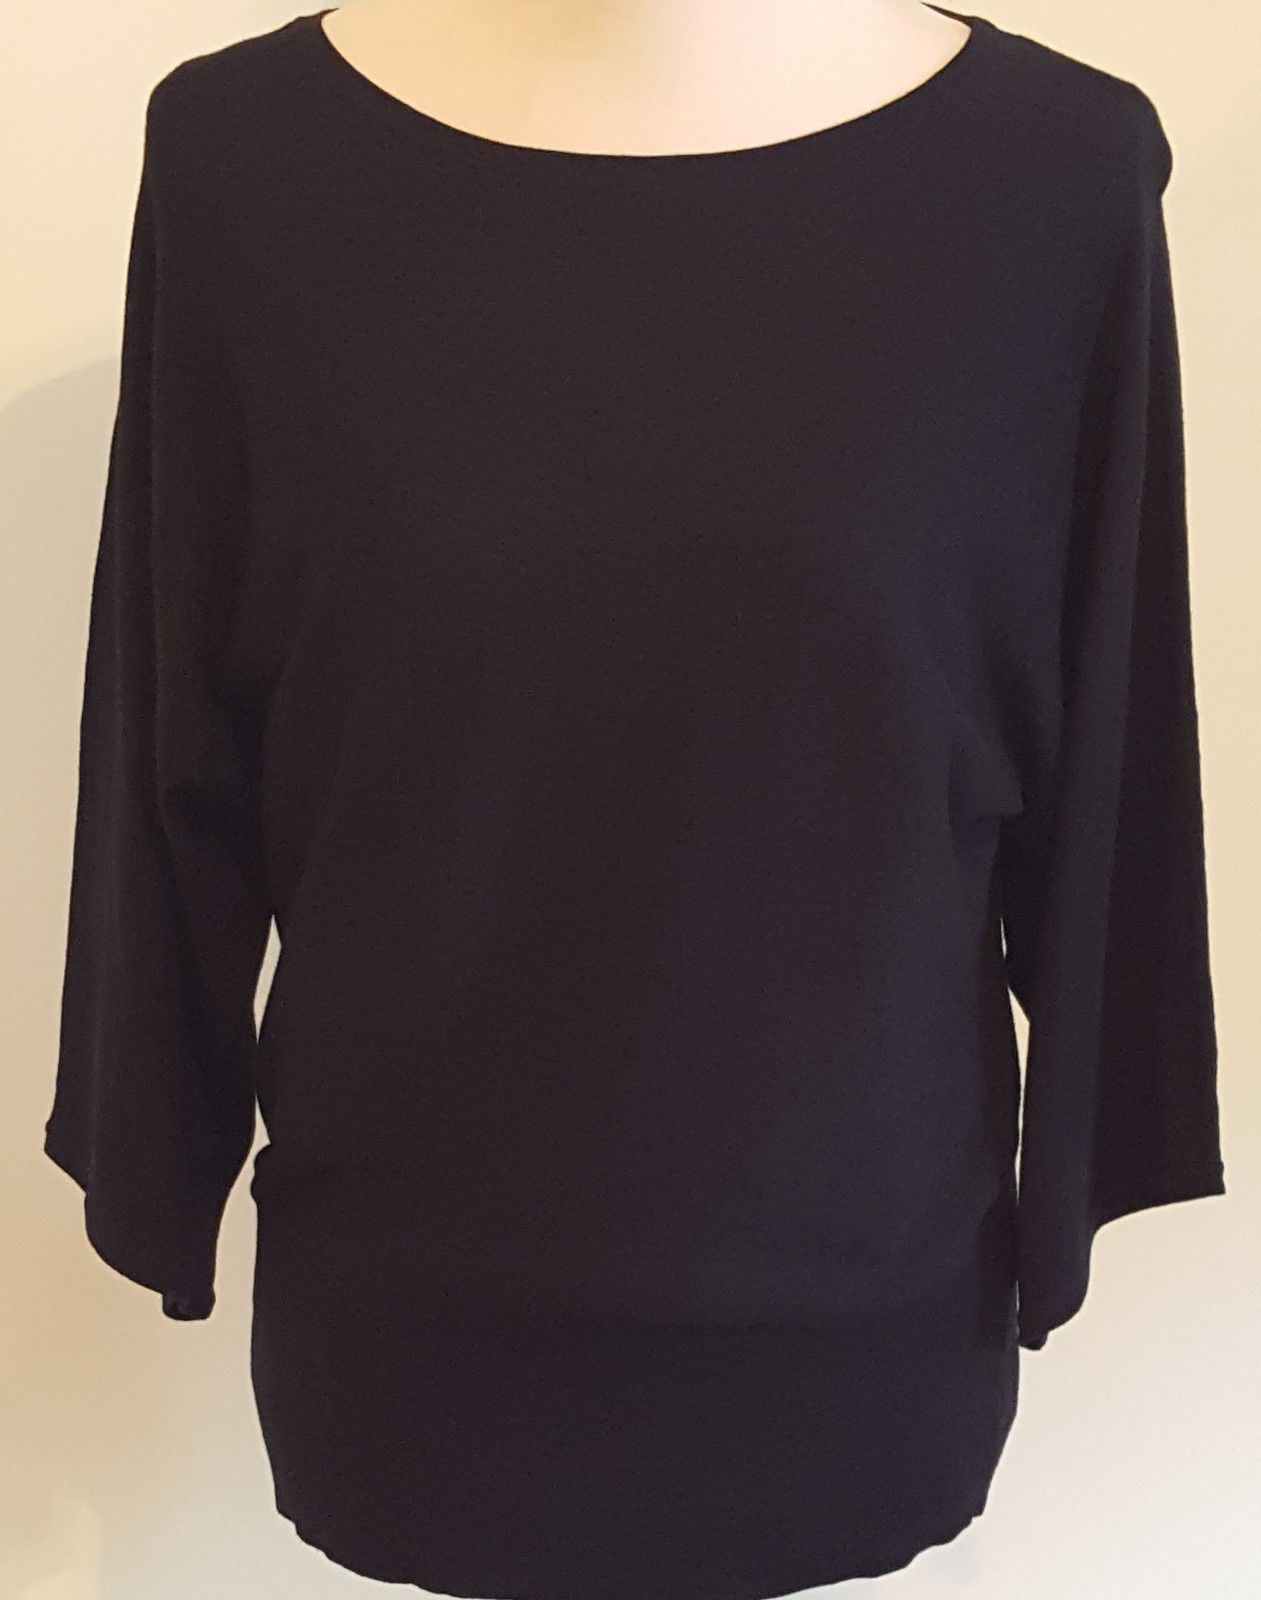 613ebee498 Talbots Ca 23147 – Women's Black Knit Top and 50 similar items